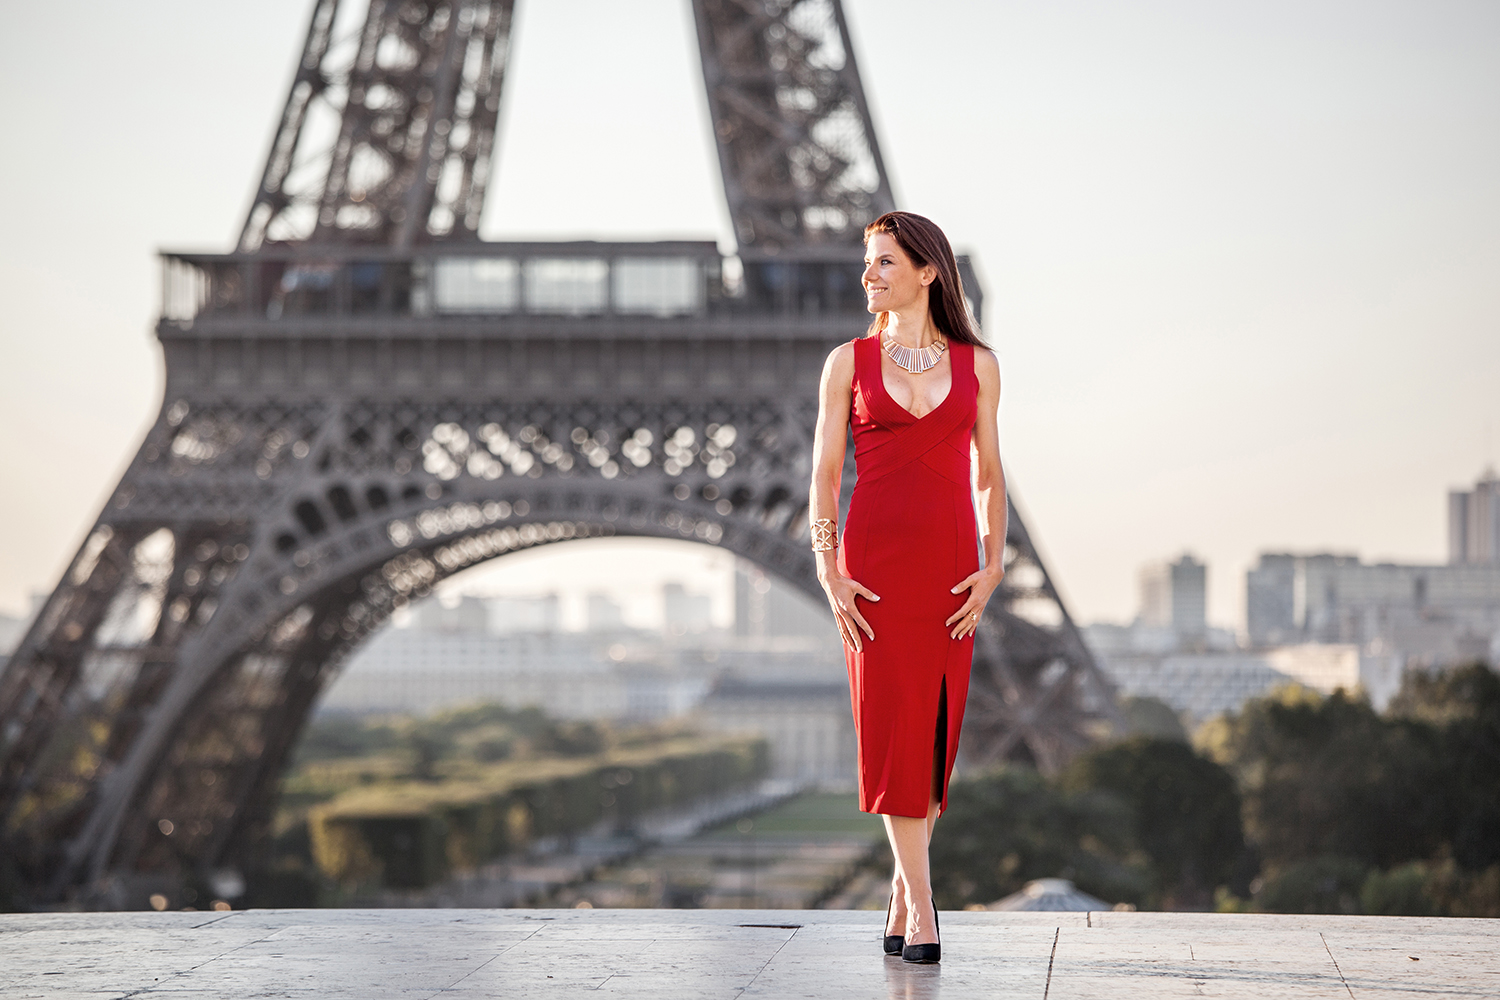 fashion collection photoshooting paris eiffeltower